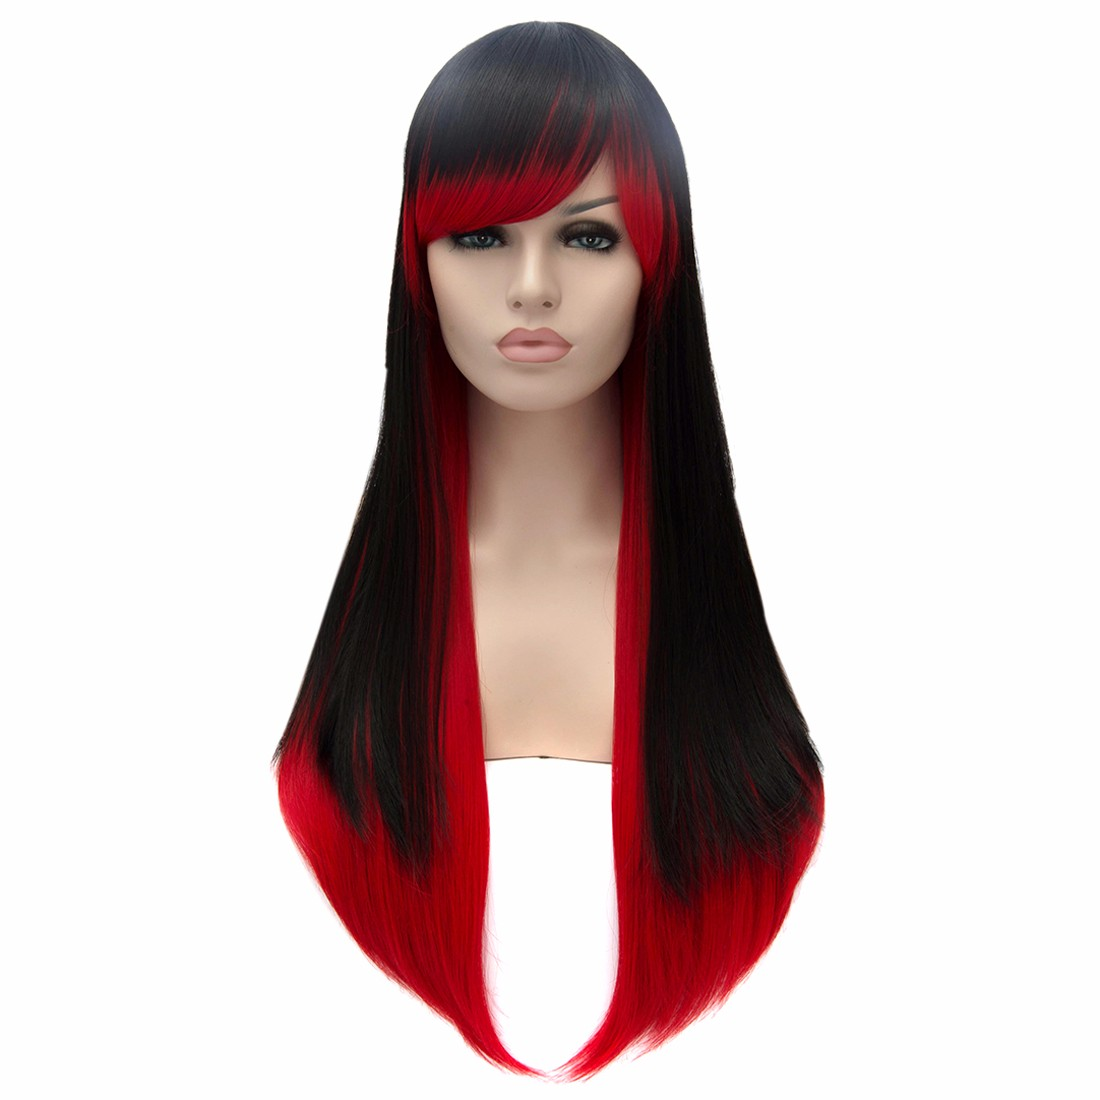 Black Red Women Long Straight Hairstyle Cosplay Party New Resistant Wigs<br><br>Aliexpress